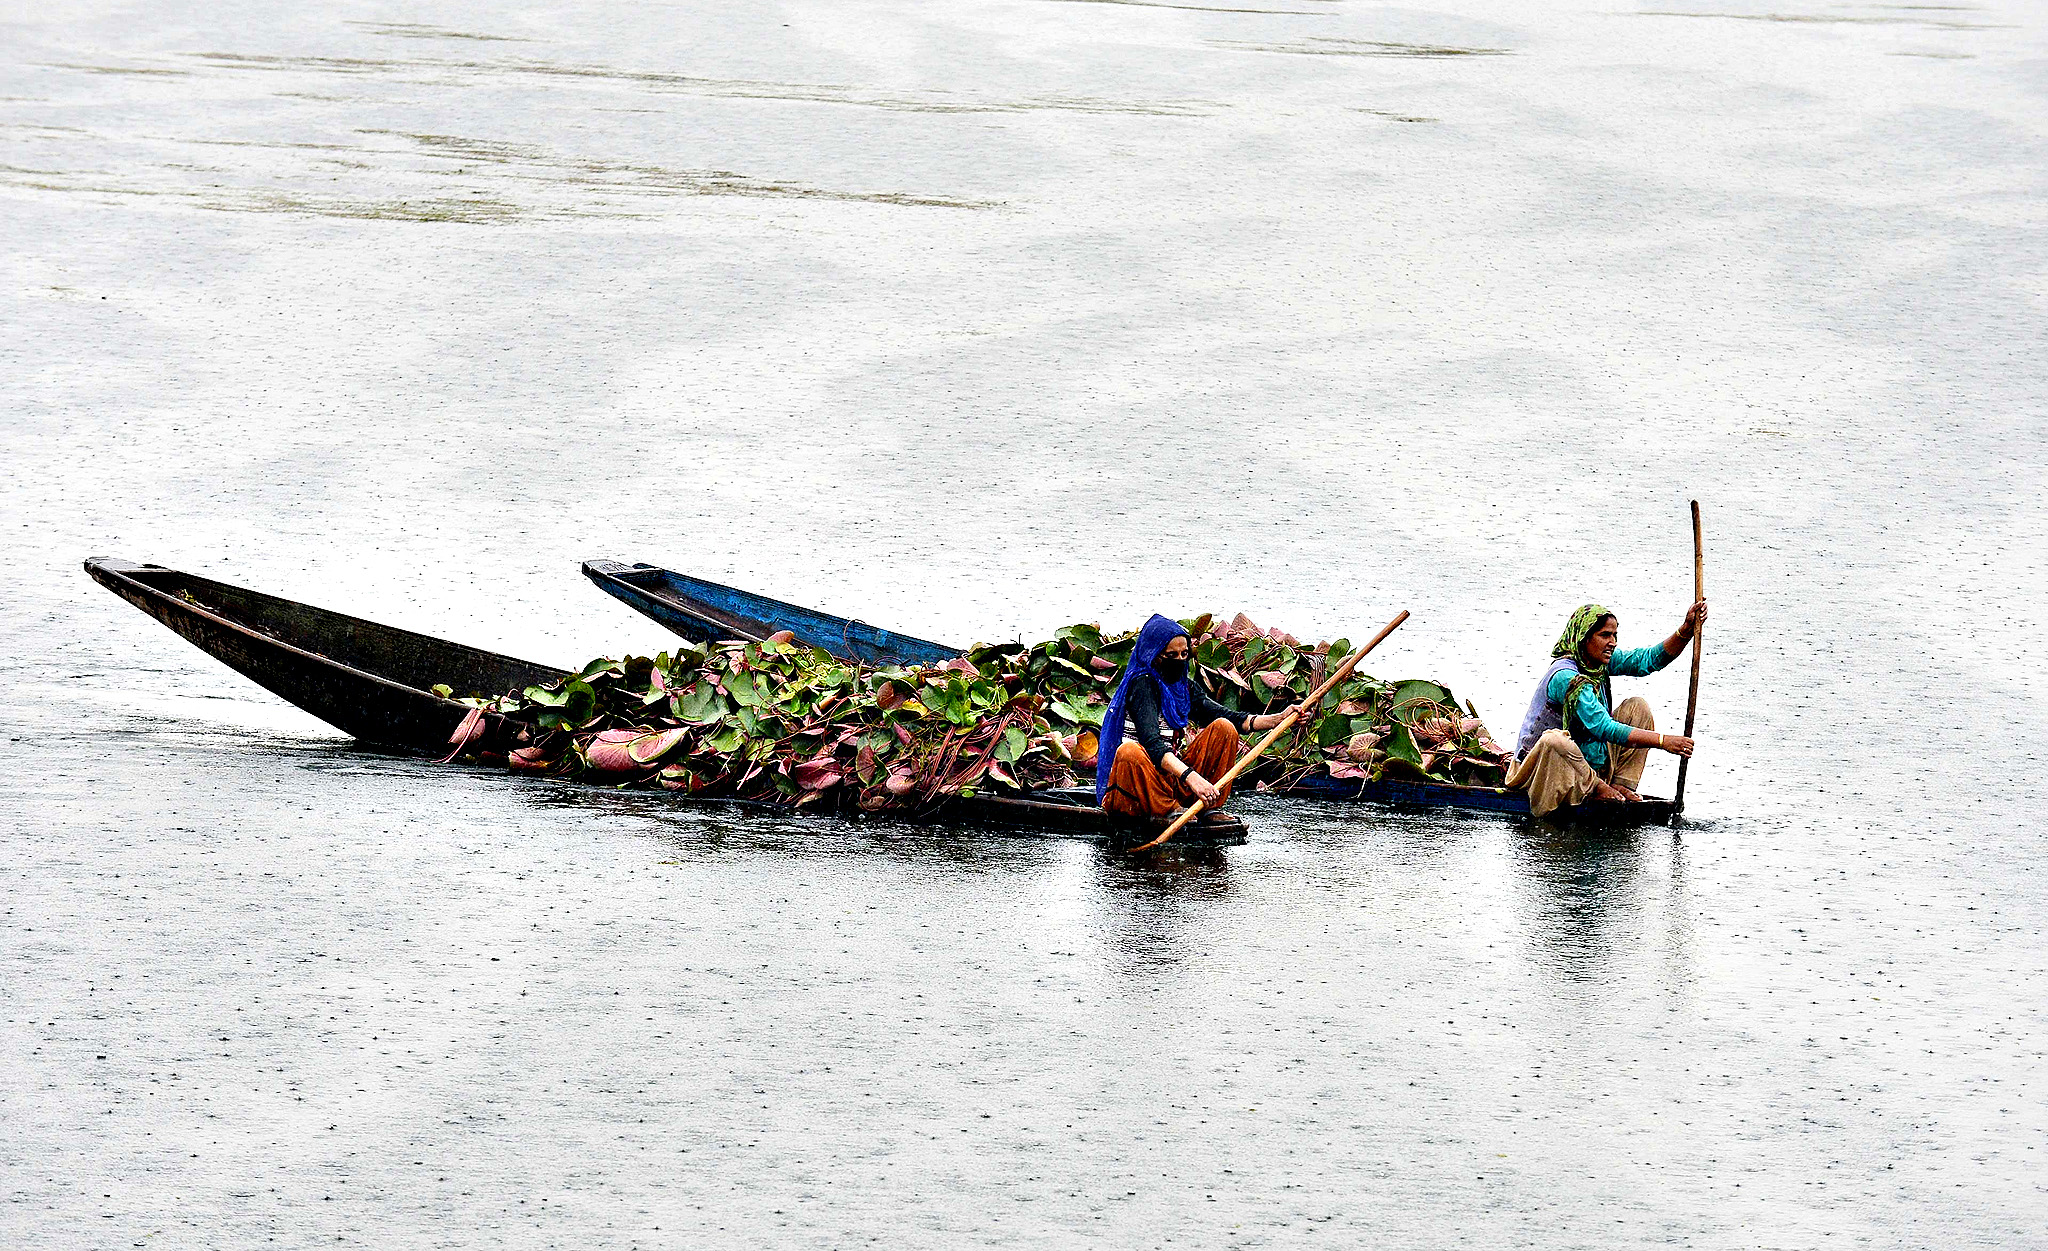 Kashmiri women paddle boats loaded with lotus roots for cattle feed on Dal Lake in Srinagar on August 27, 2014.   Kashmir is divided between India and Pakistan, which both claim the region in full but administer separate partial areas. The neighbours have fought two of their three wars since independence over its control.